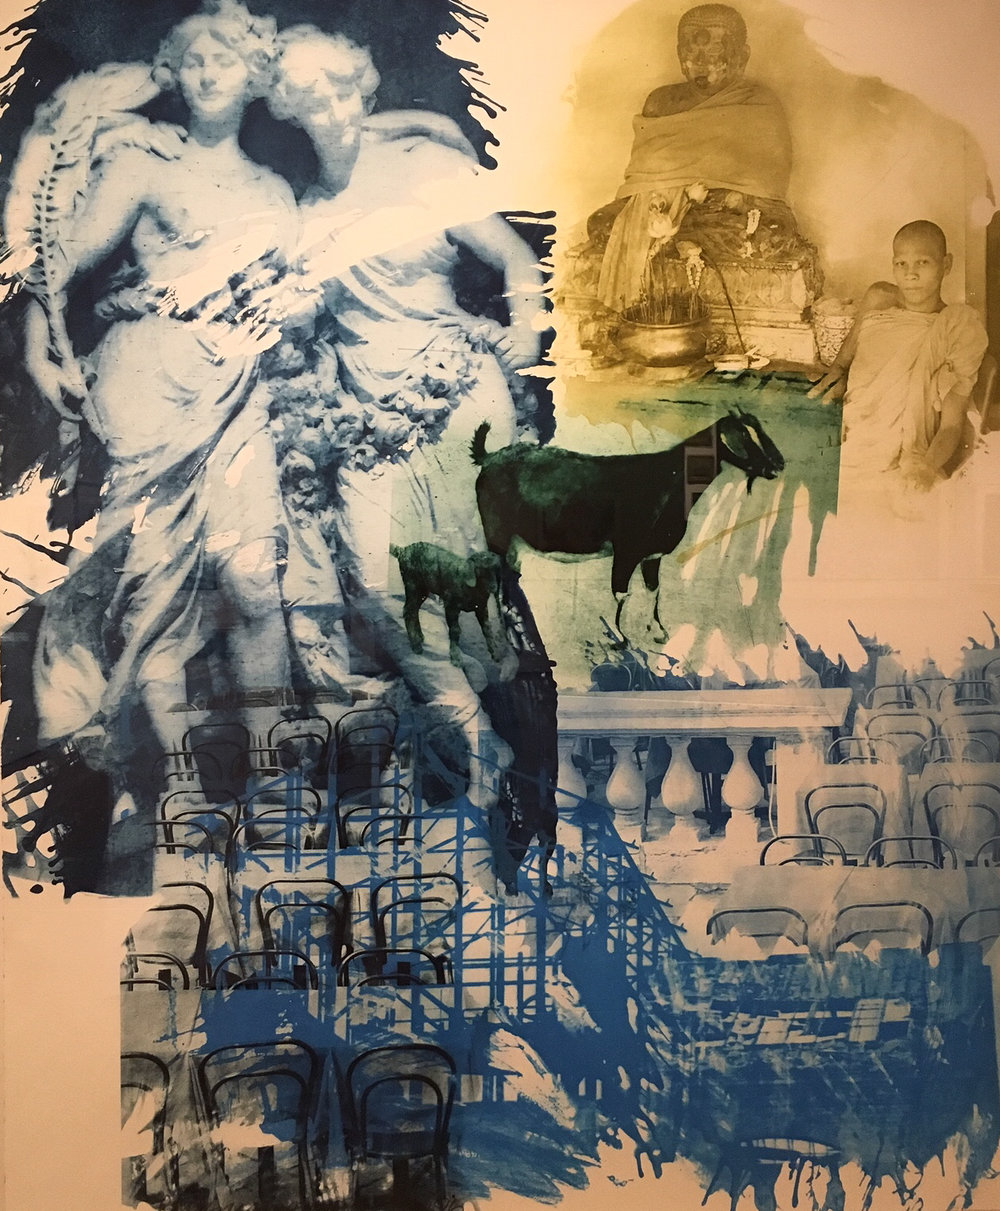 Robert Rauschenberg, Intermission from Ground Rules